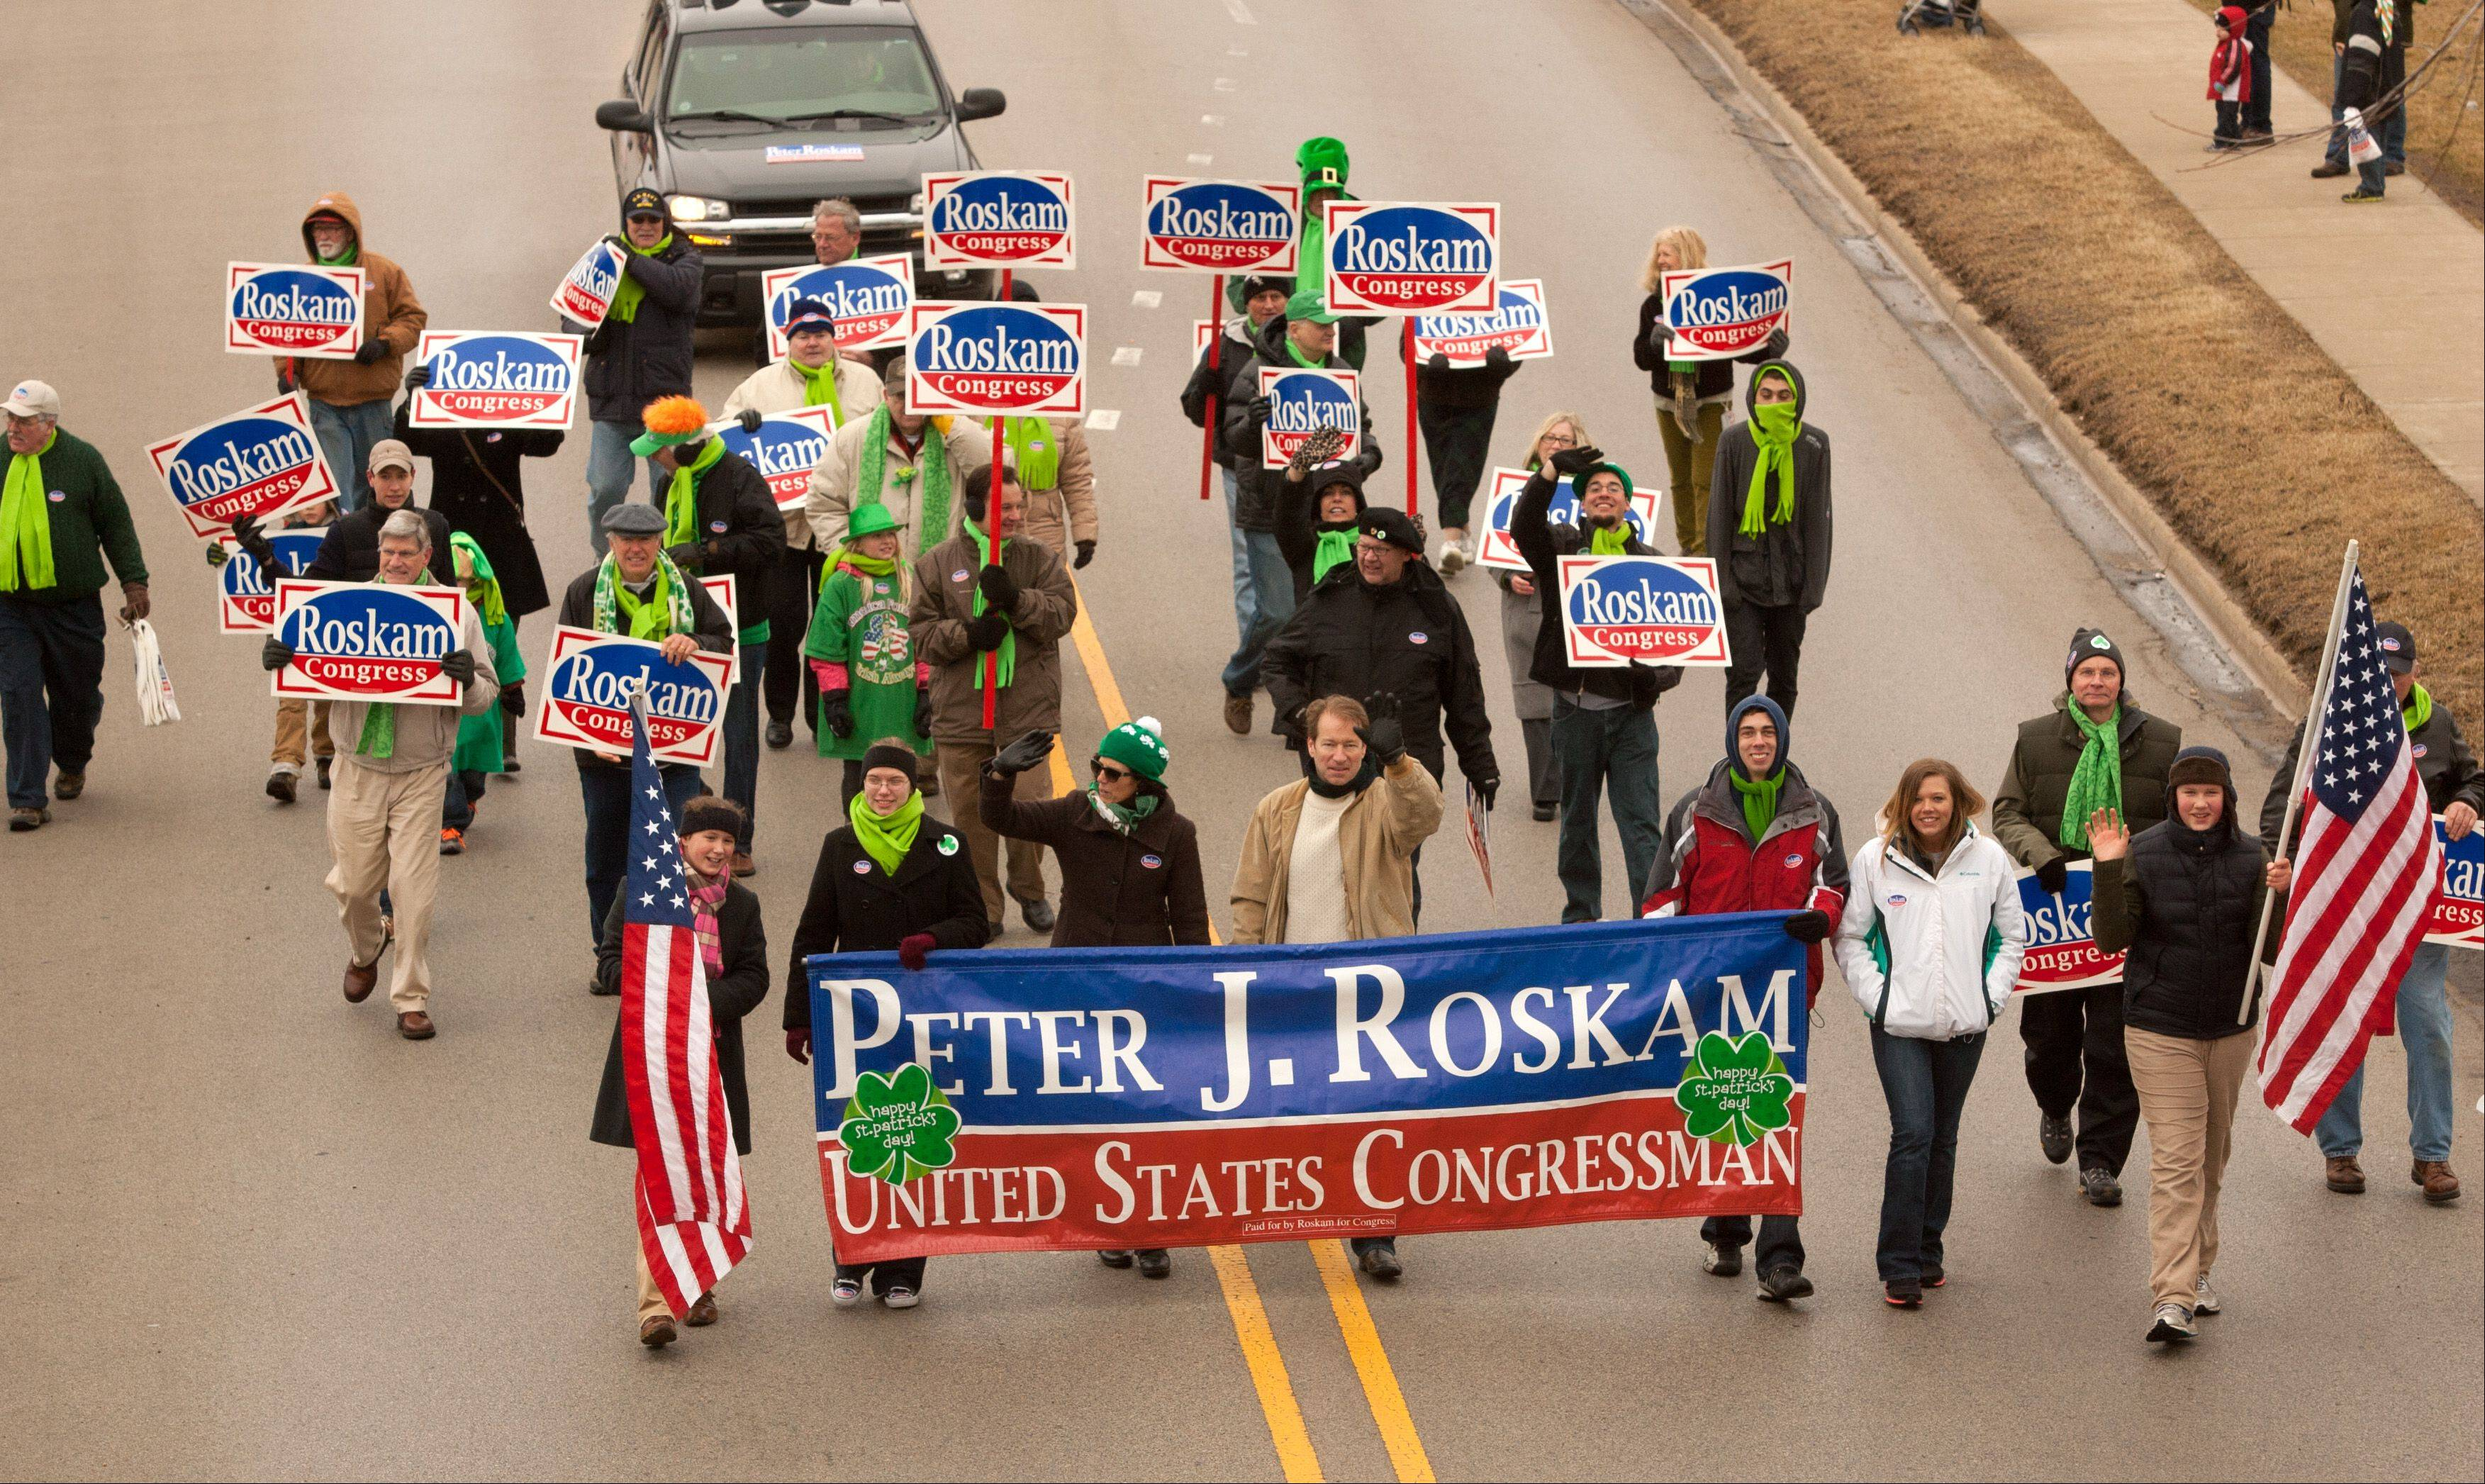 U.S. Rep. Peter Roskam and a group of his supporters march Saturday in Naperville's St. Patrick's Day Parade.